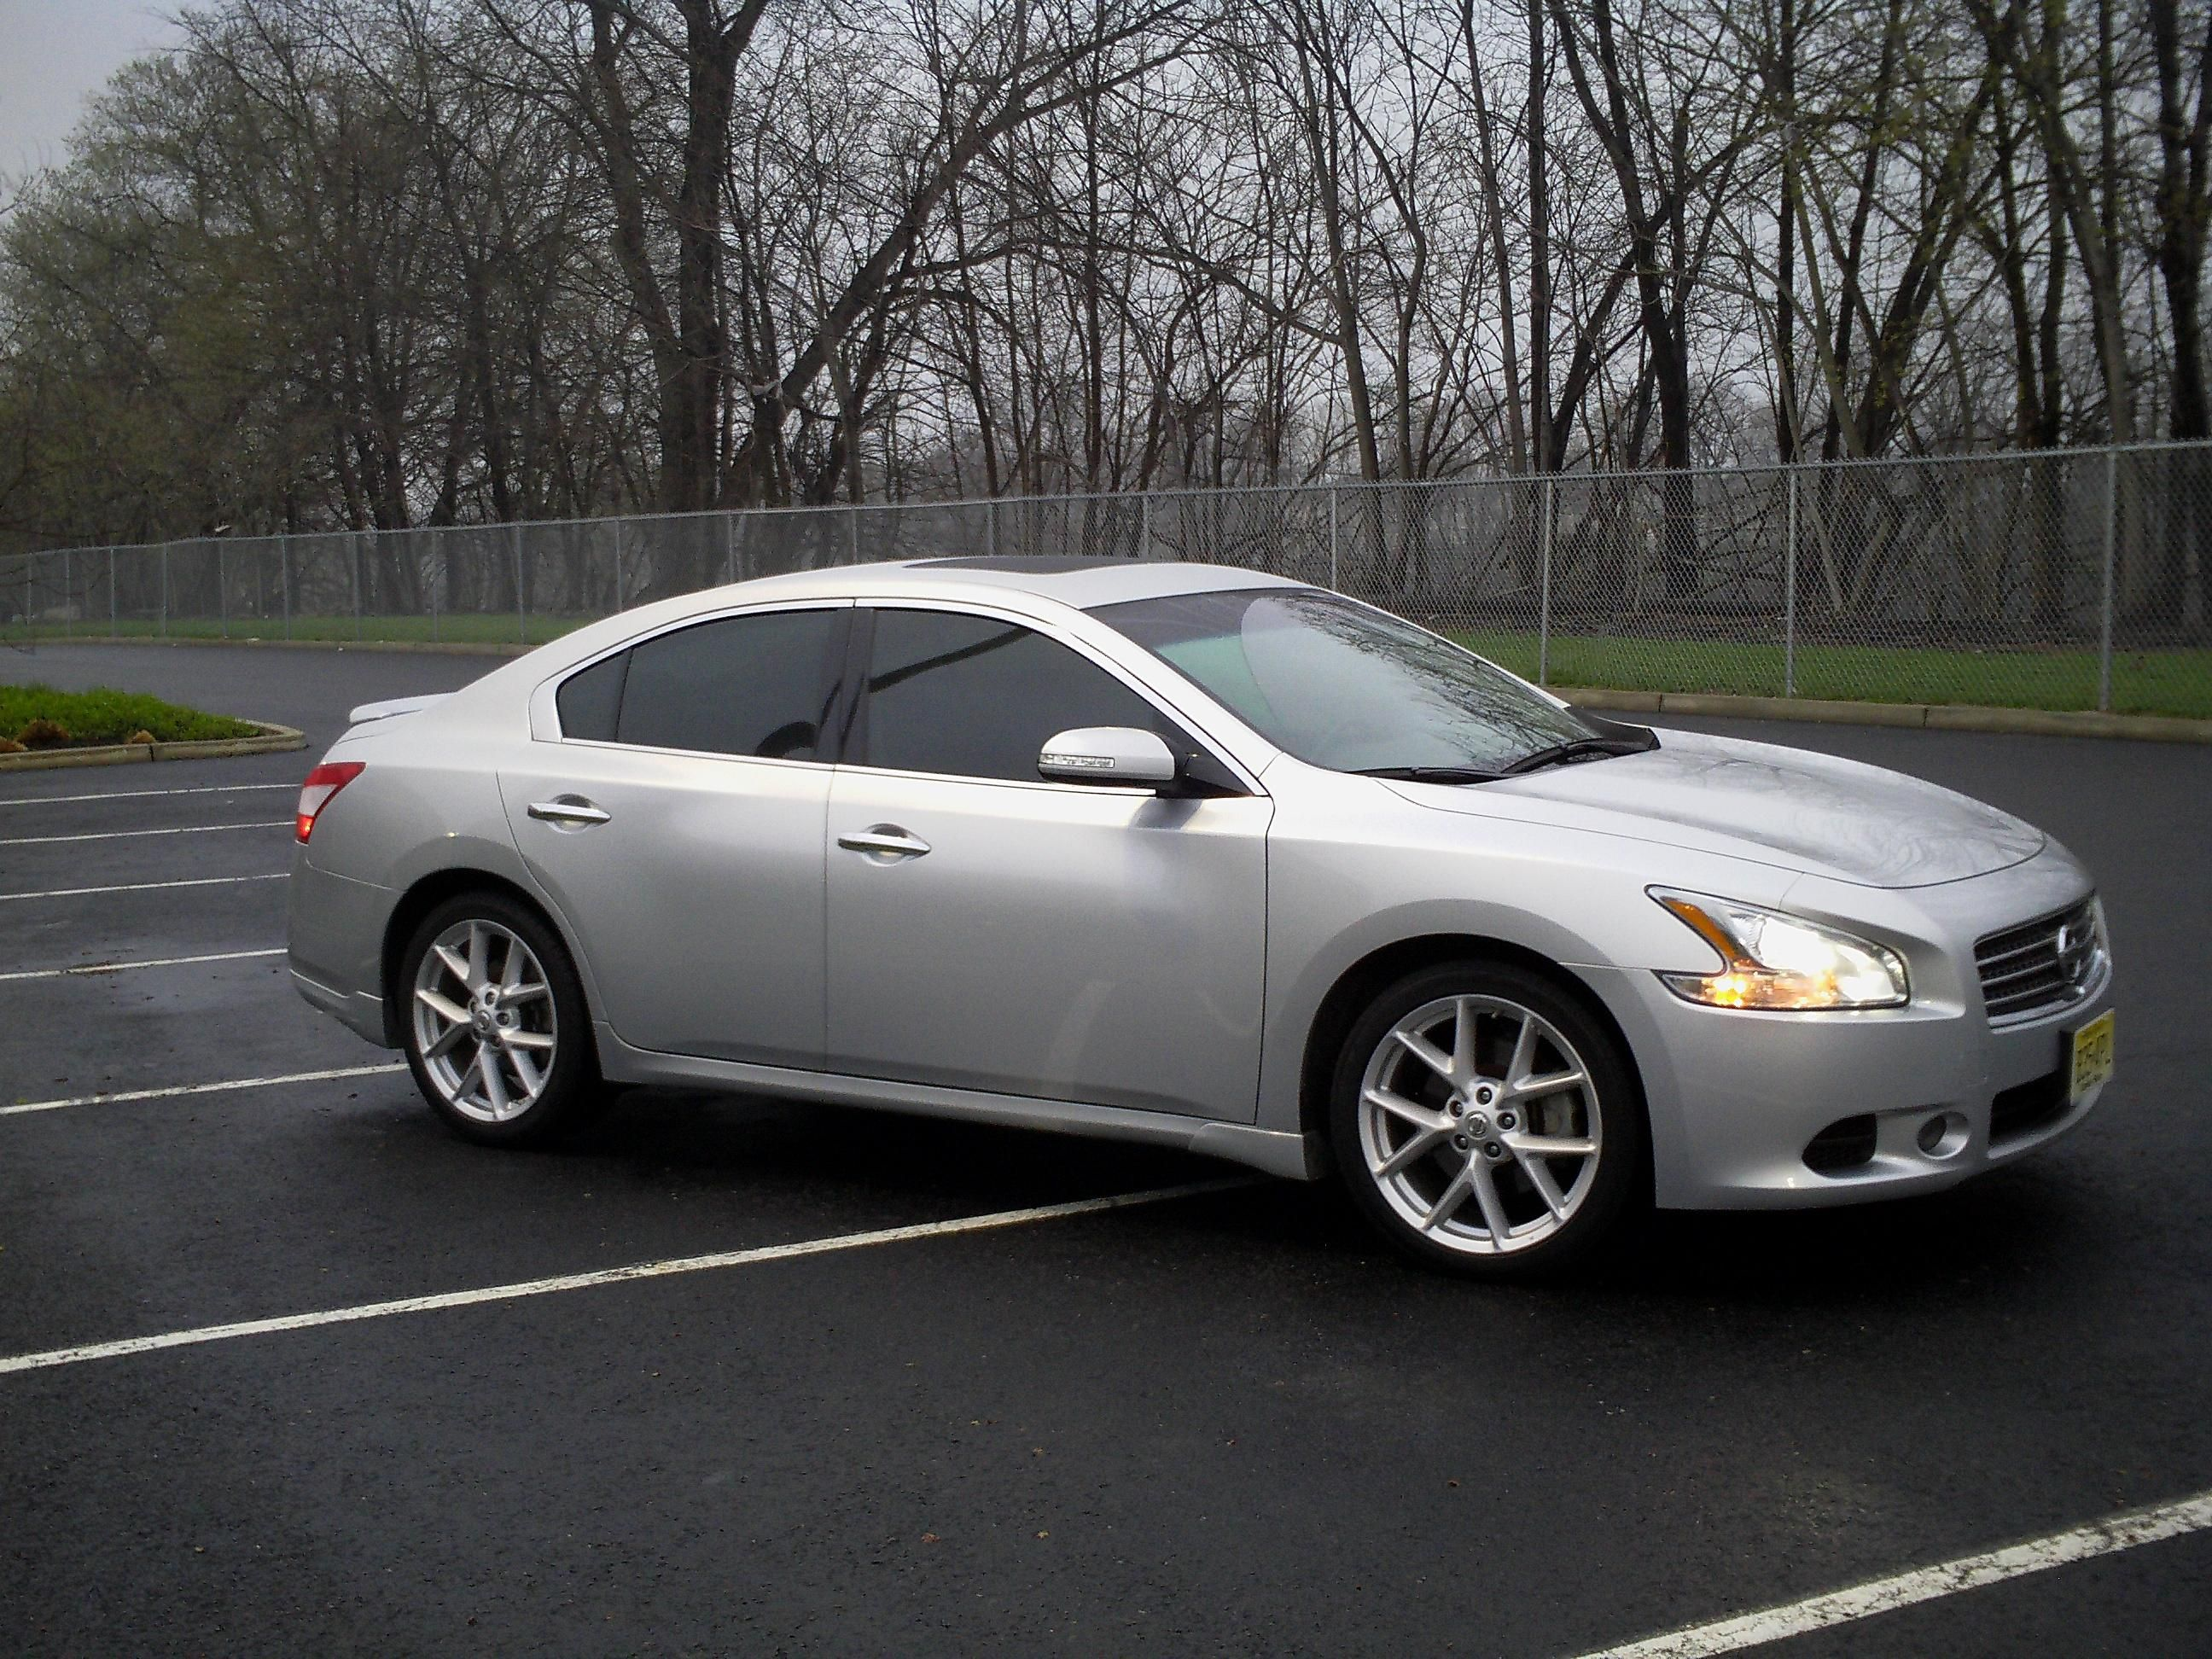 Silver nissan maxima nissan pinterest nissan maxima and nissan silver nissan maxima vanachro Choice Image